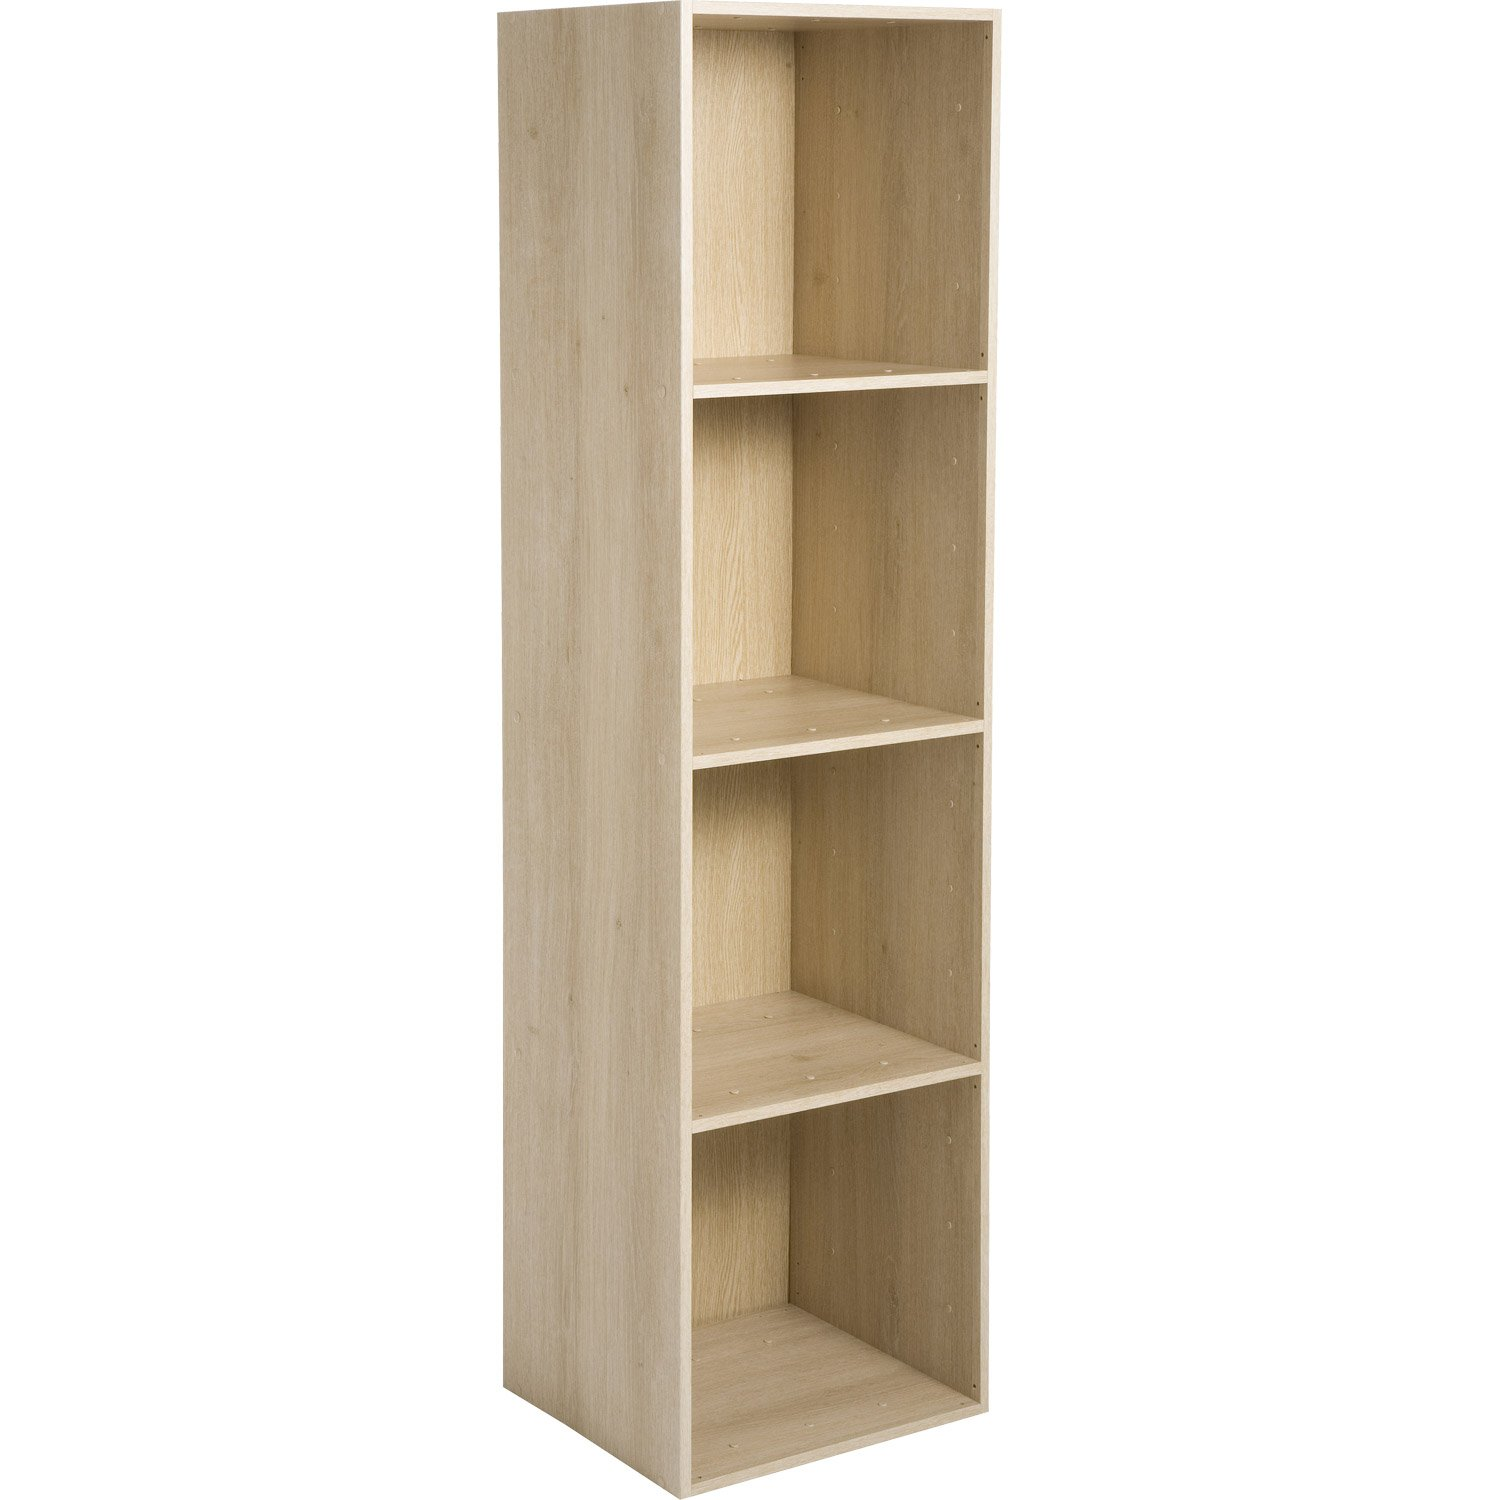 Shelf for Meuble 9 cases ikea